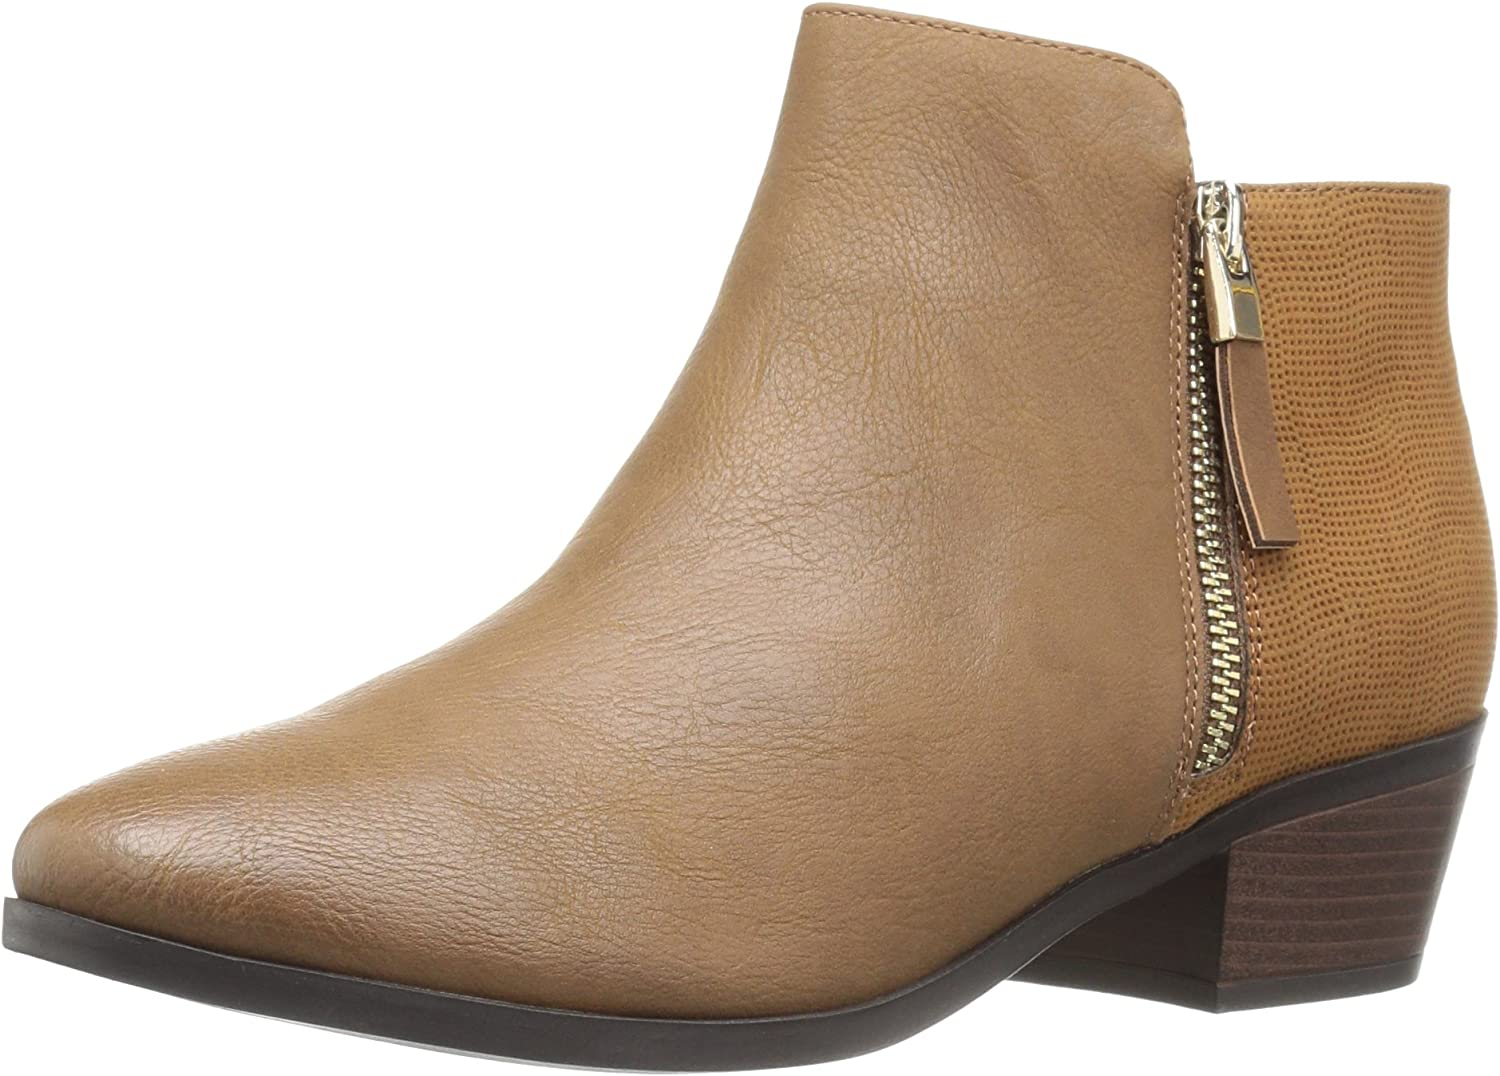 Call It Spring Womens Gunson Ankle Bootie